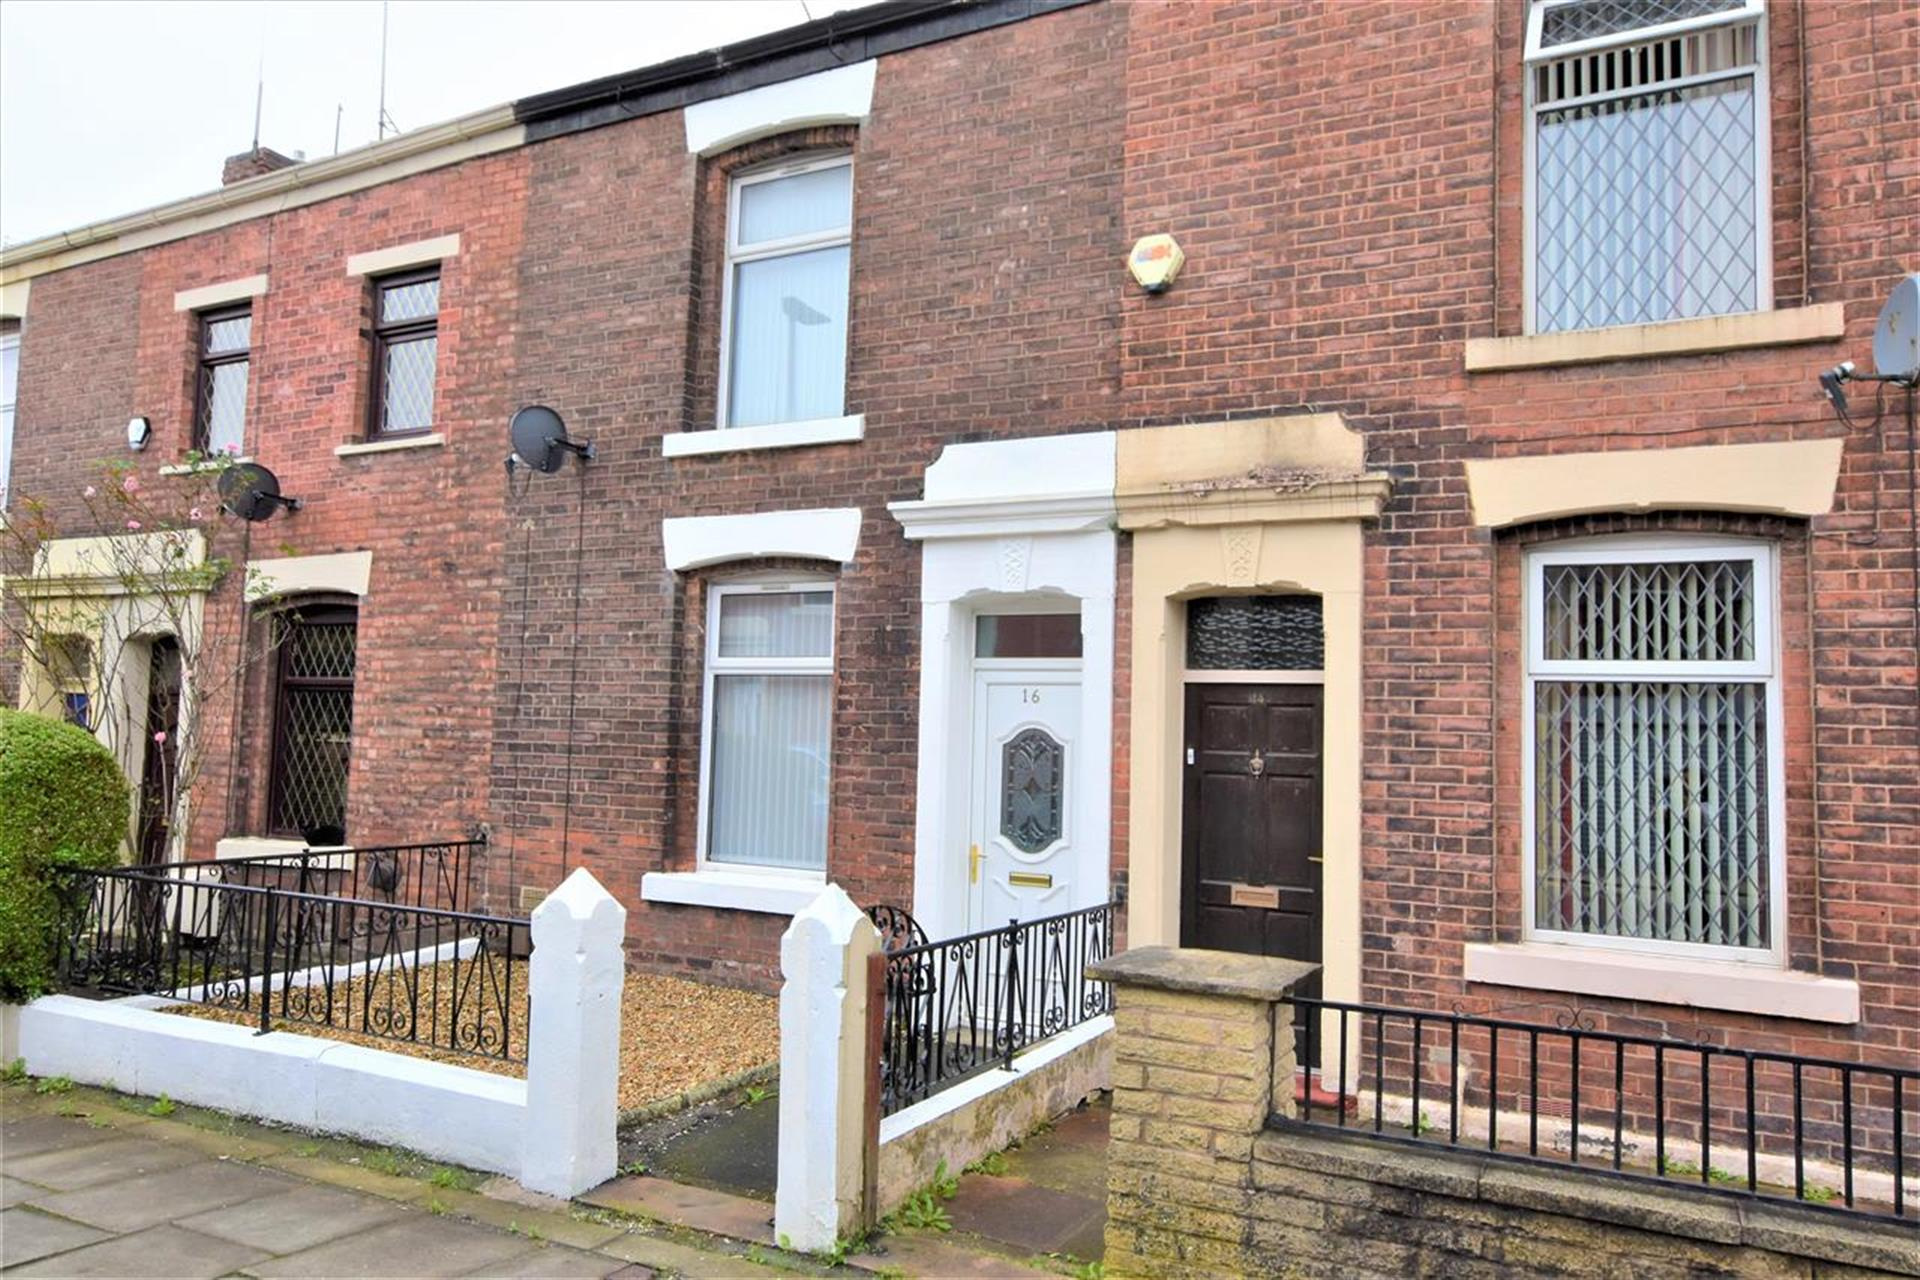 2 Bedroom Terraced House To Rent - Main Picture